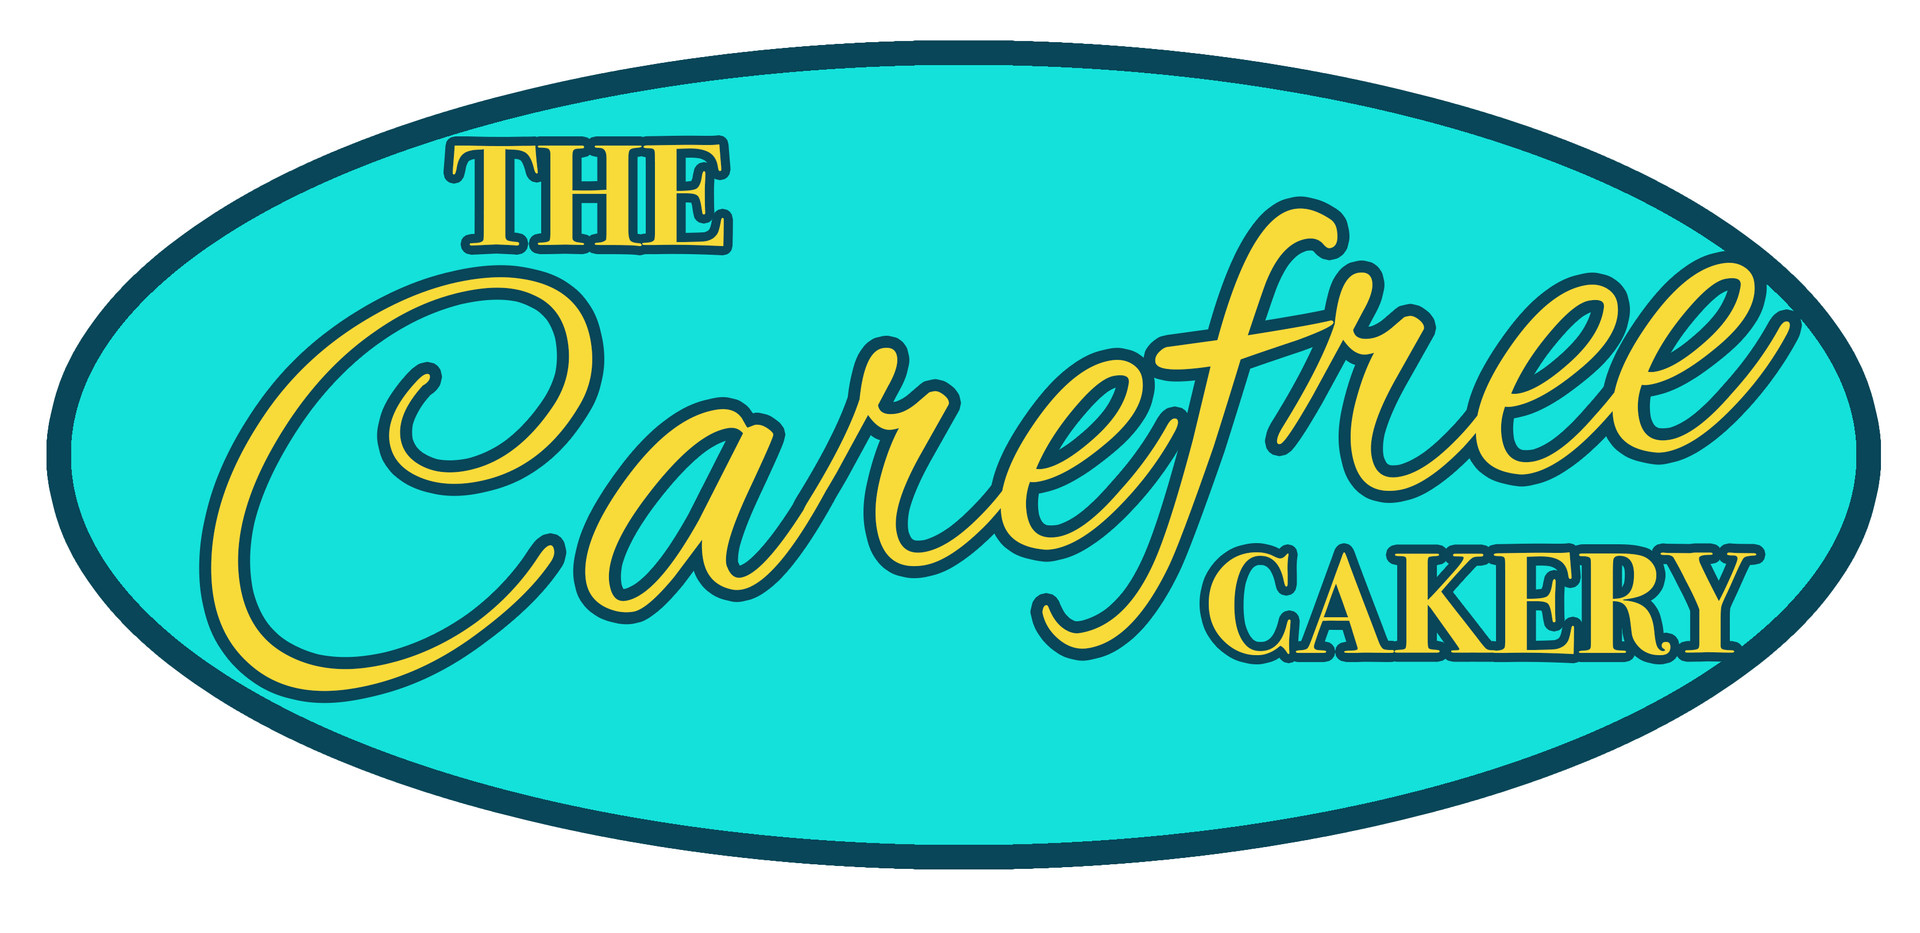 The Carefree Cakery (previous)